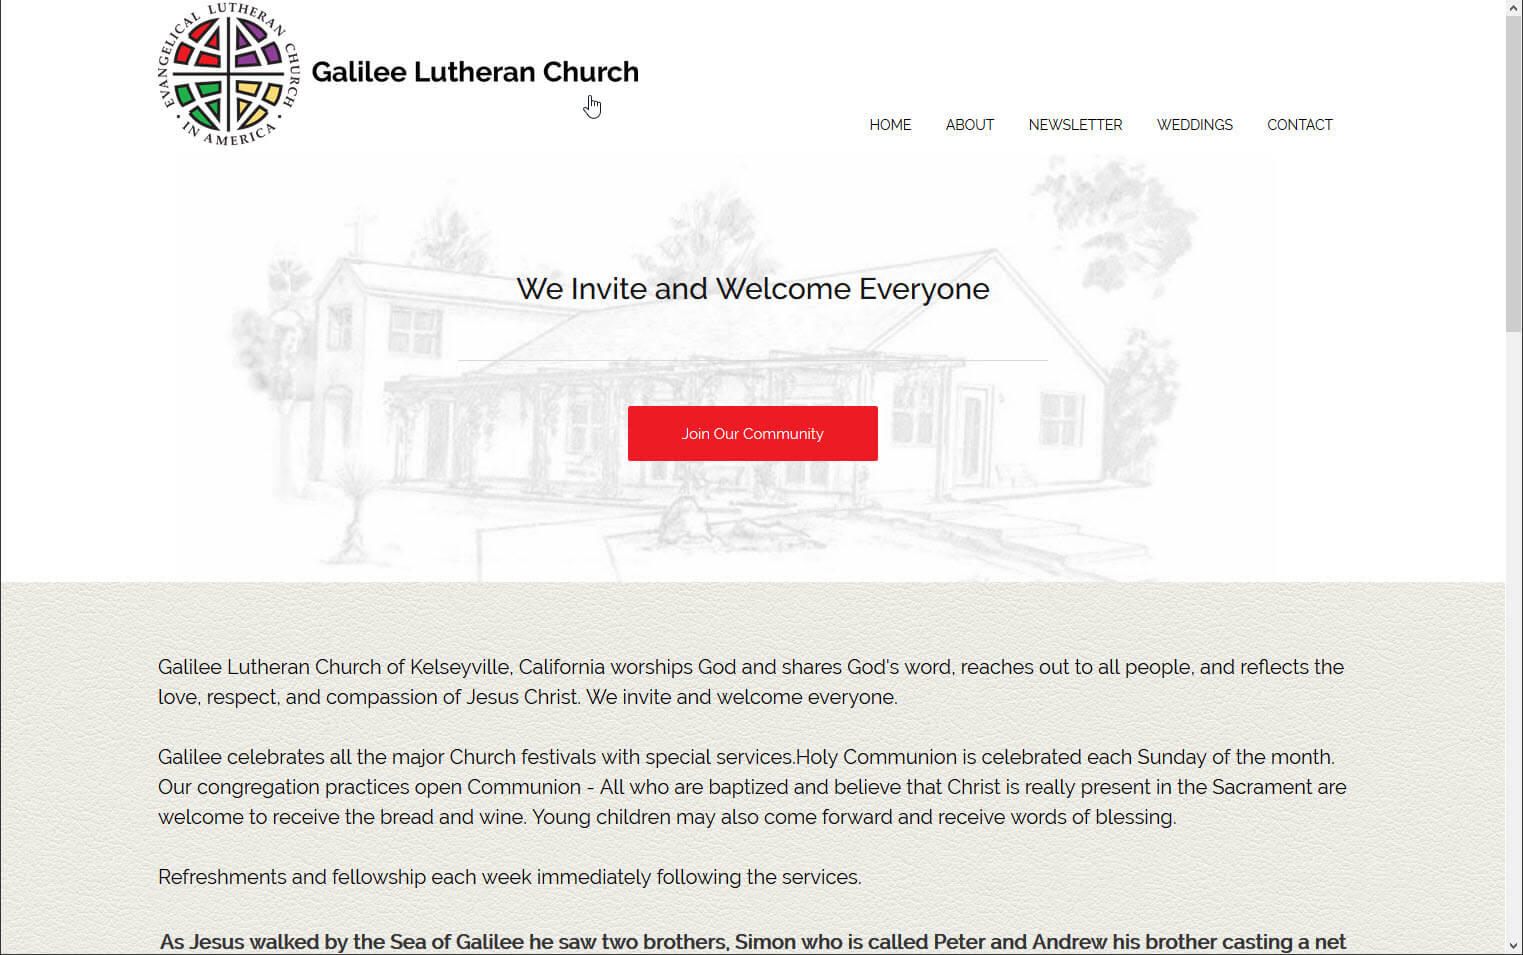 Galilee Lutheran Church